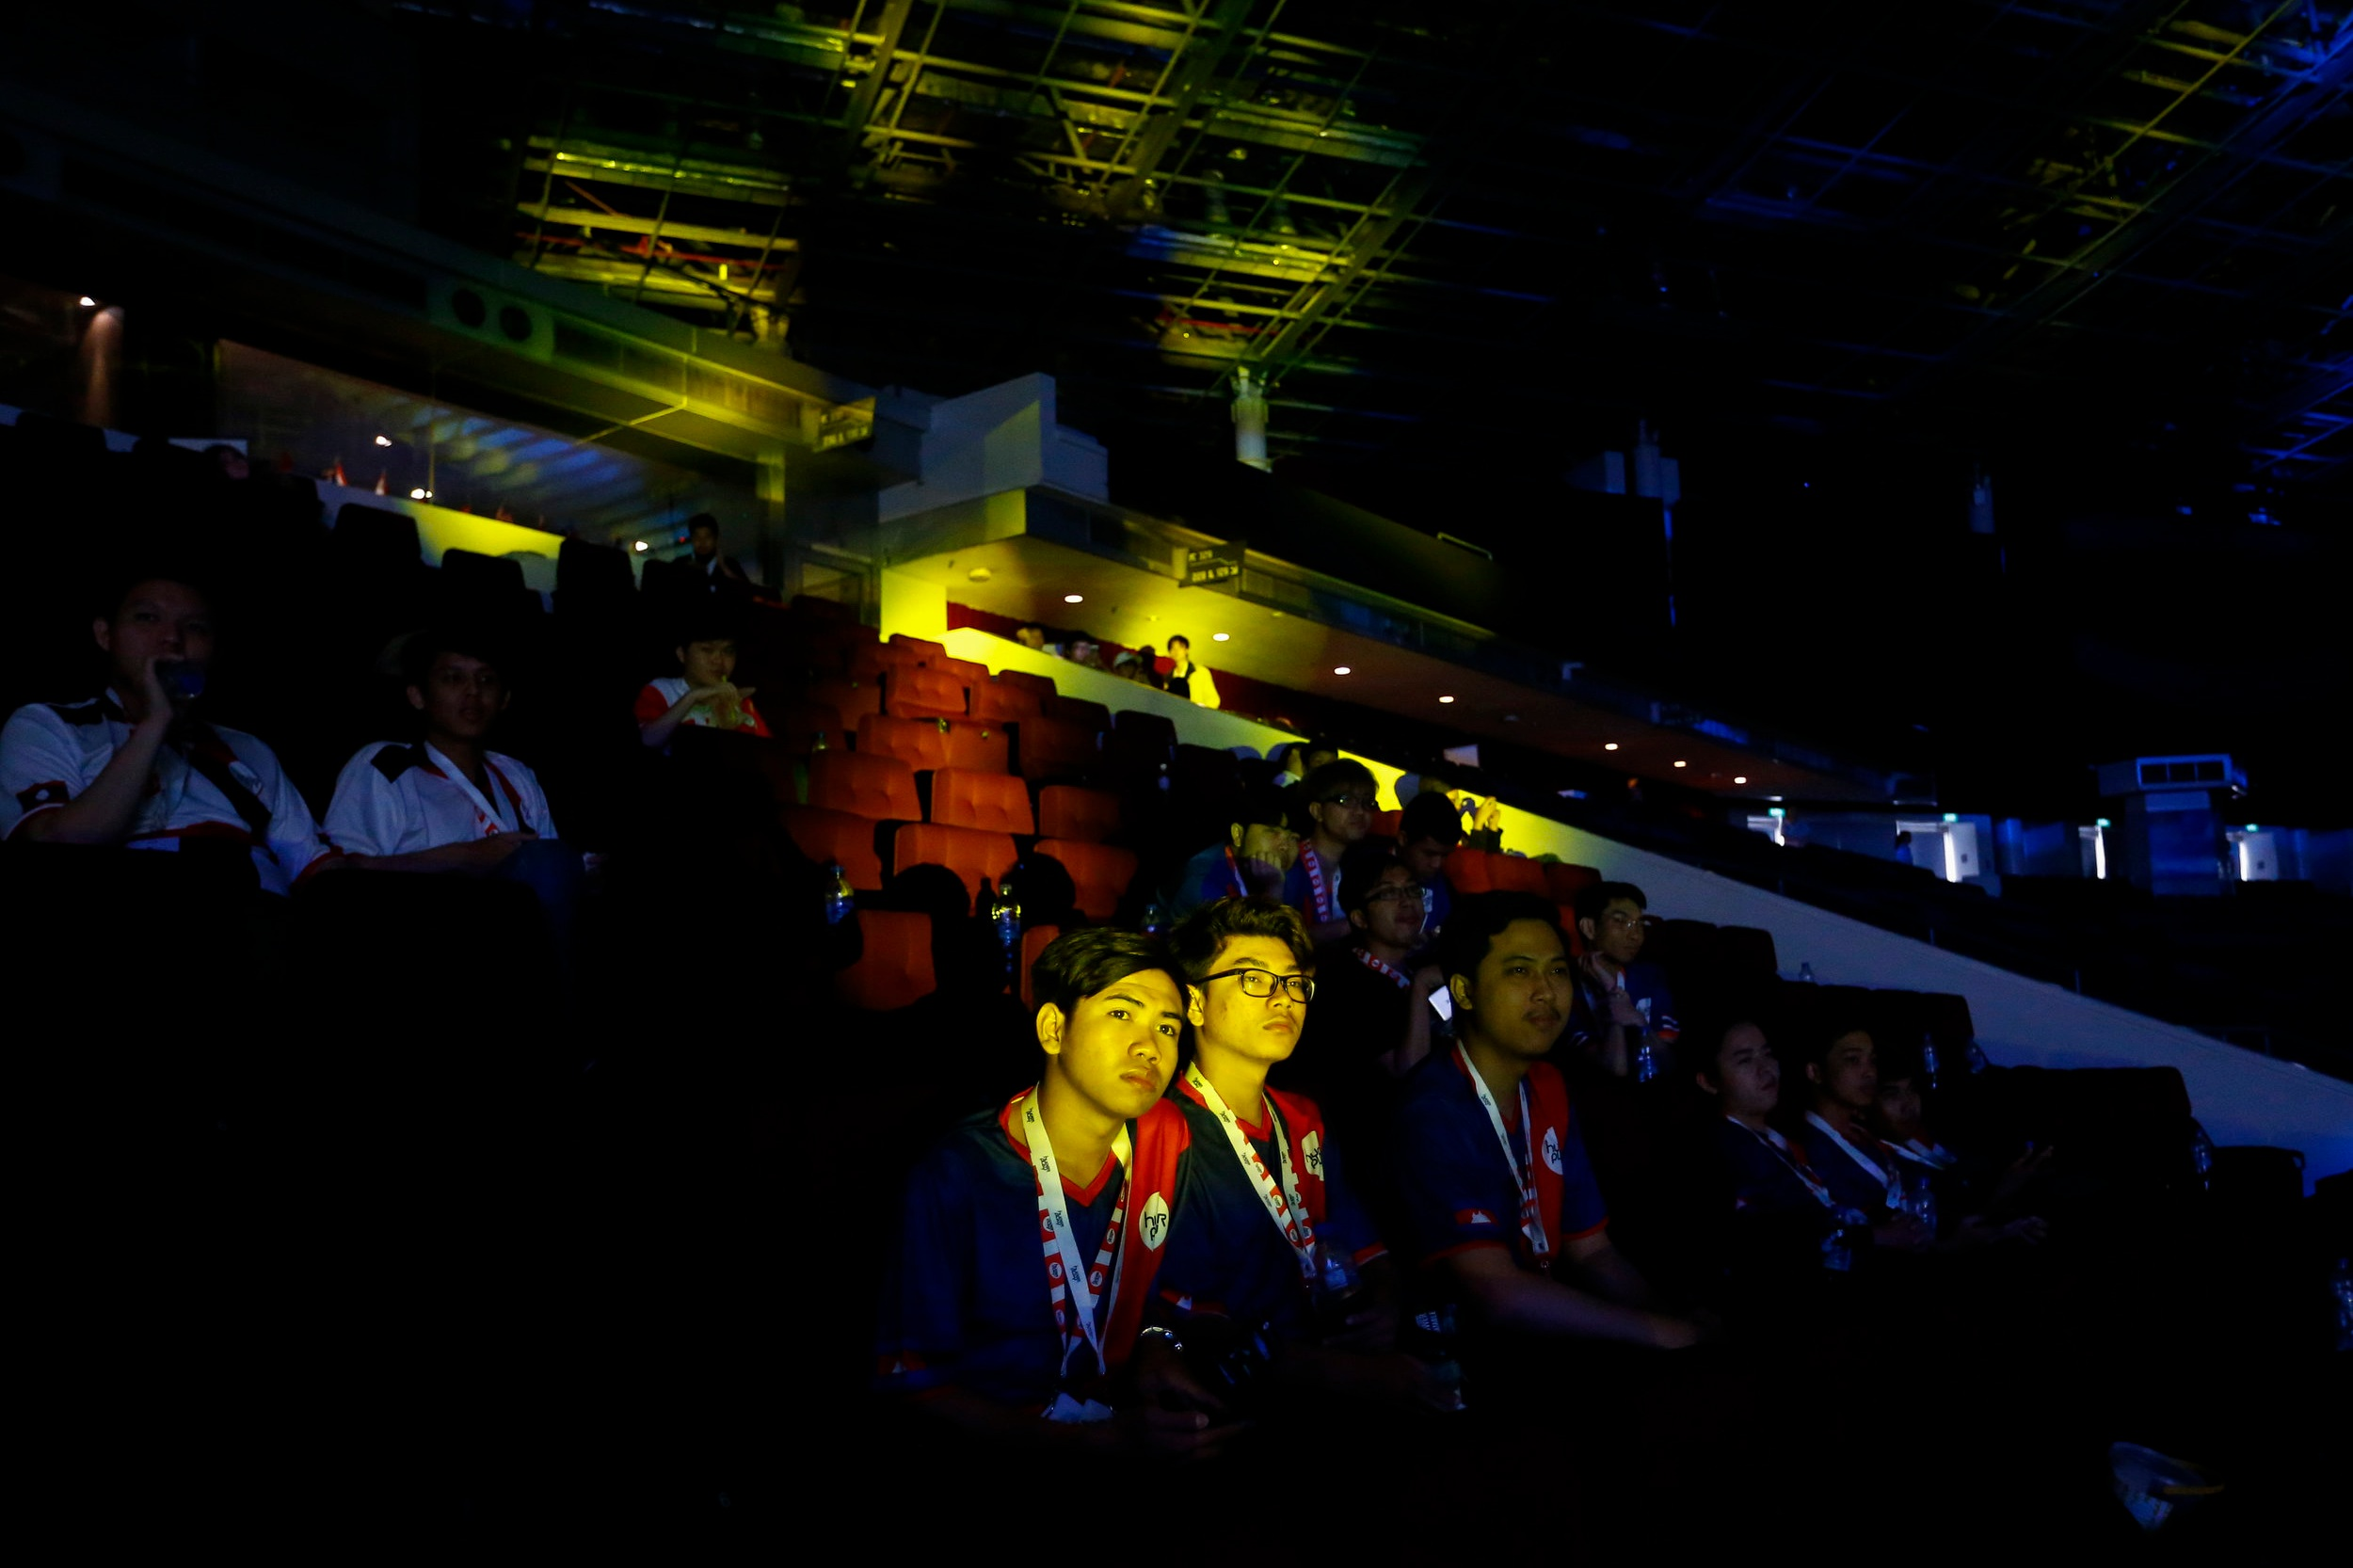 Cambodian League of Legends players watch Hyperplay, an e-sportstournament held in Singapore, August 4, 2018. REUTERS/FelineLim